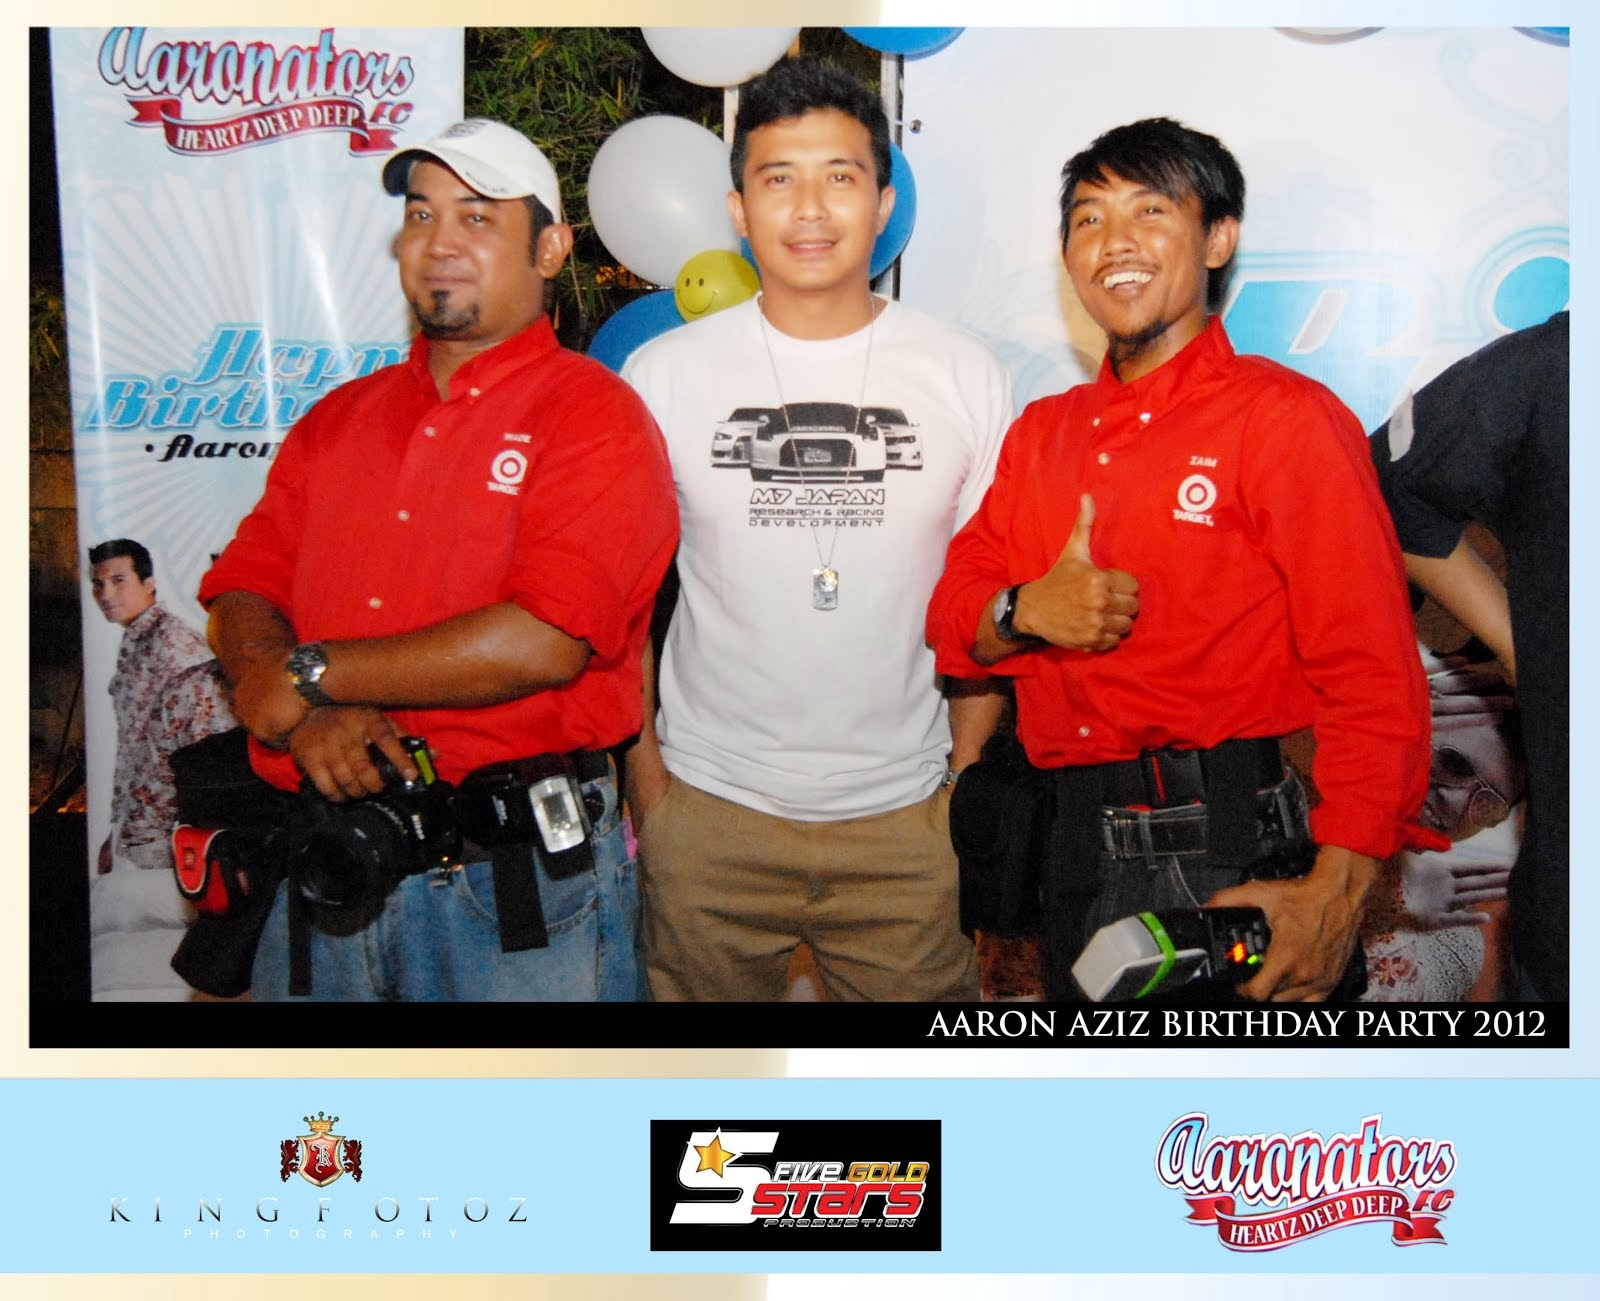 Aaron Aziz Birthday Party